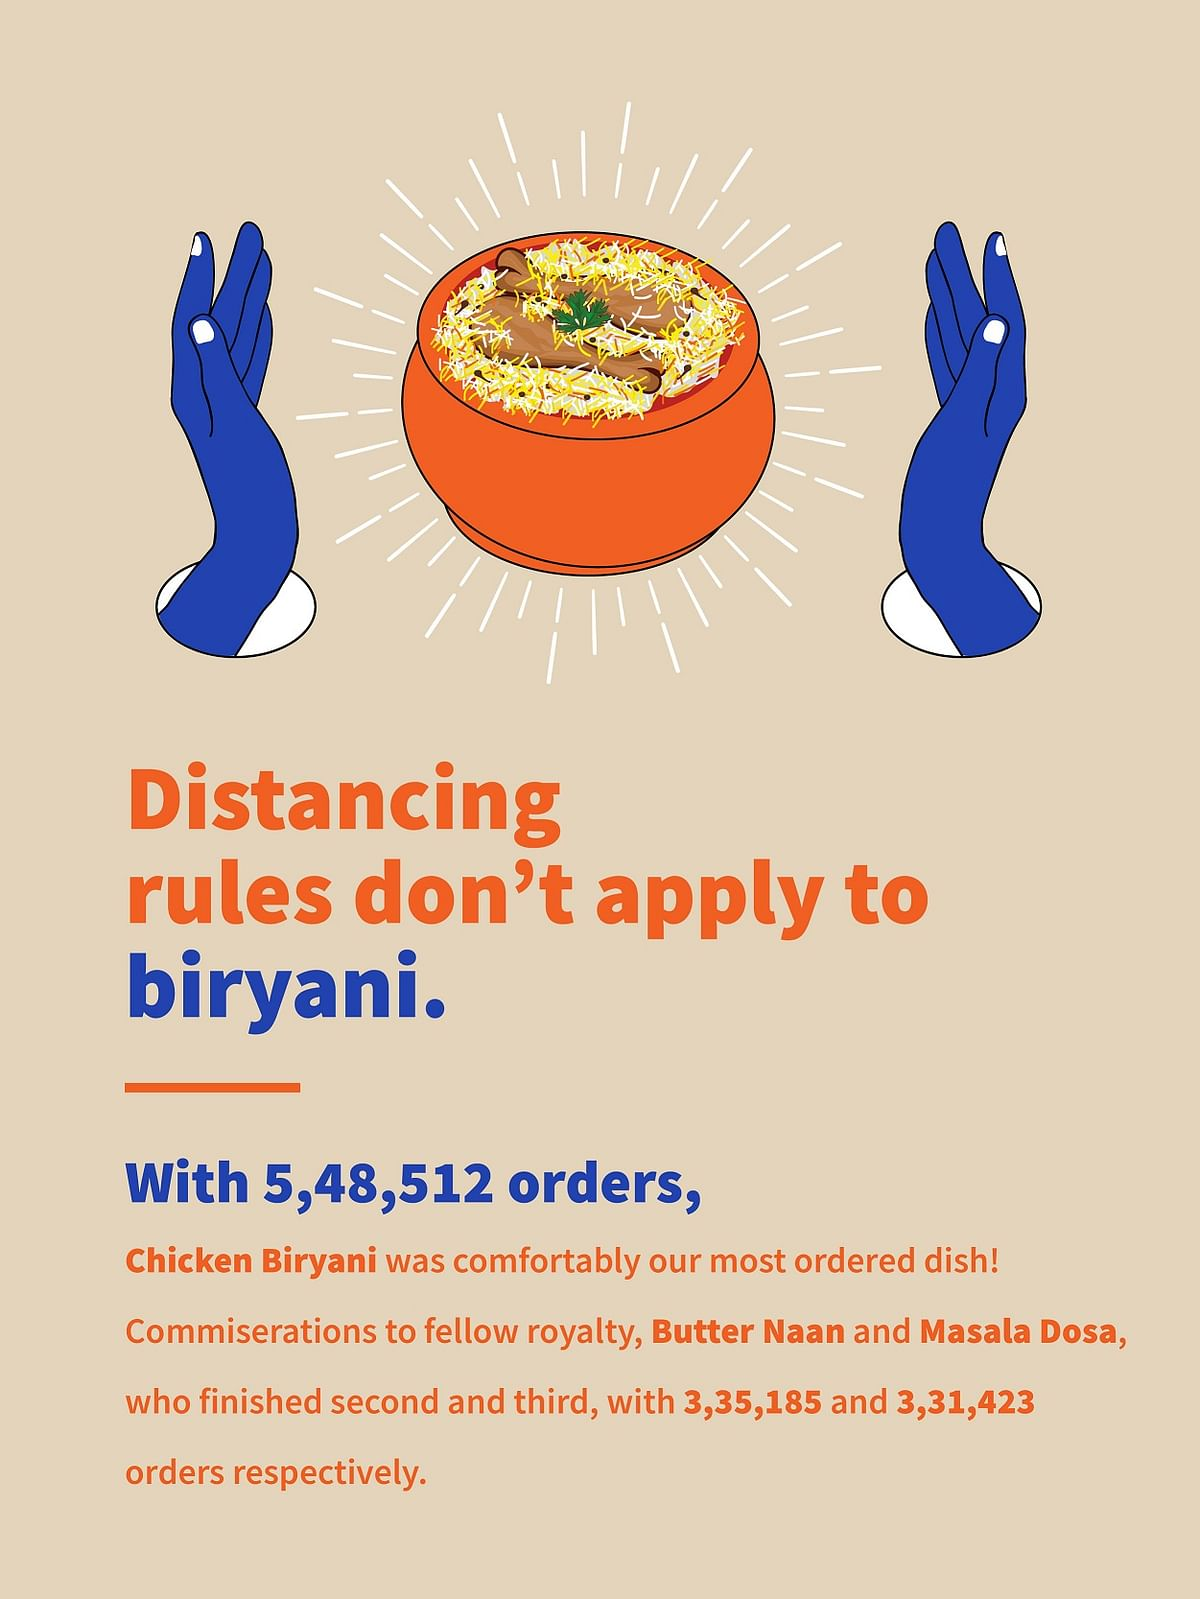 """""""On average, 65,000 meal orders were placed by 8 pm during quarantine"""": Swiggy"""